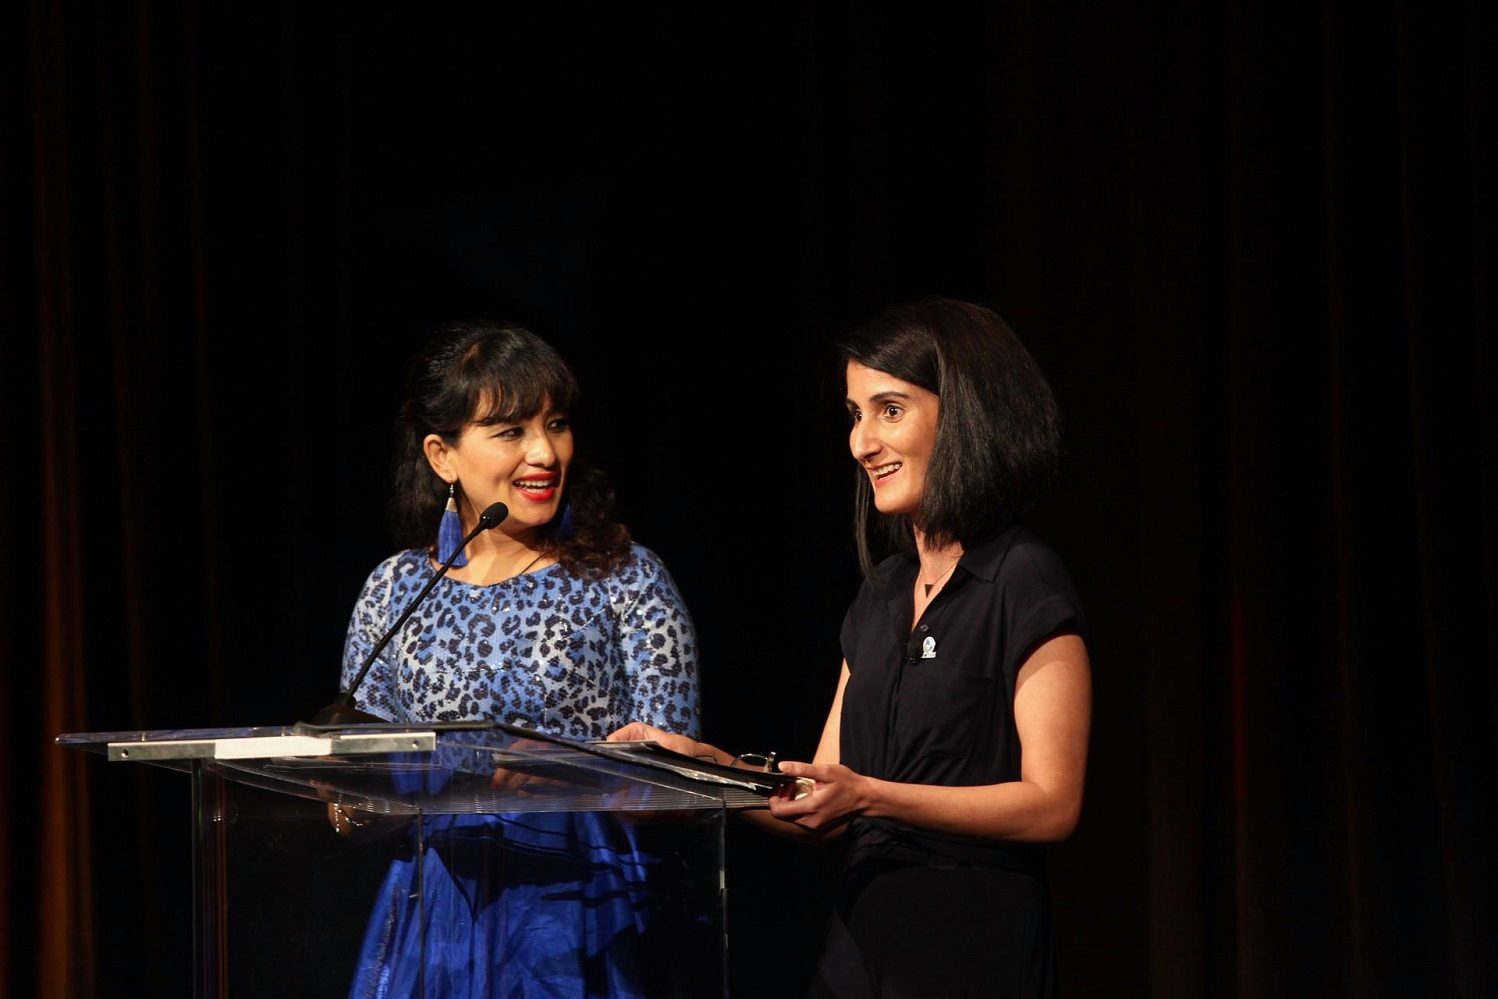 Nilima and Mariam sharing the stage as Emcee at the Atlas Corps Gala